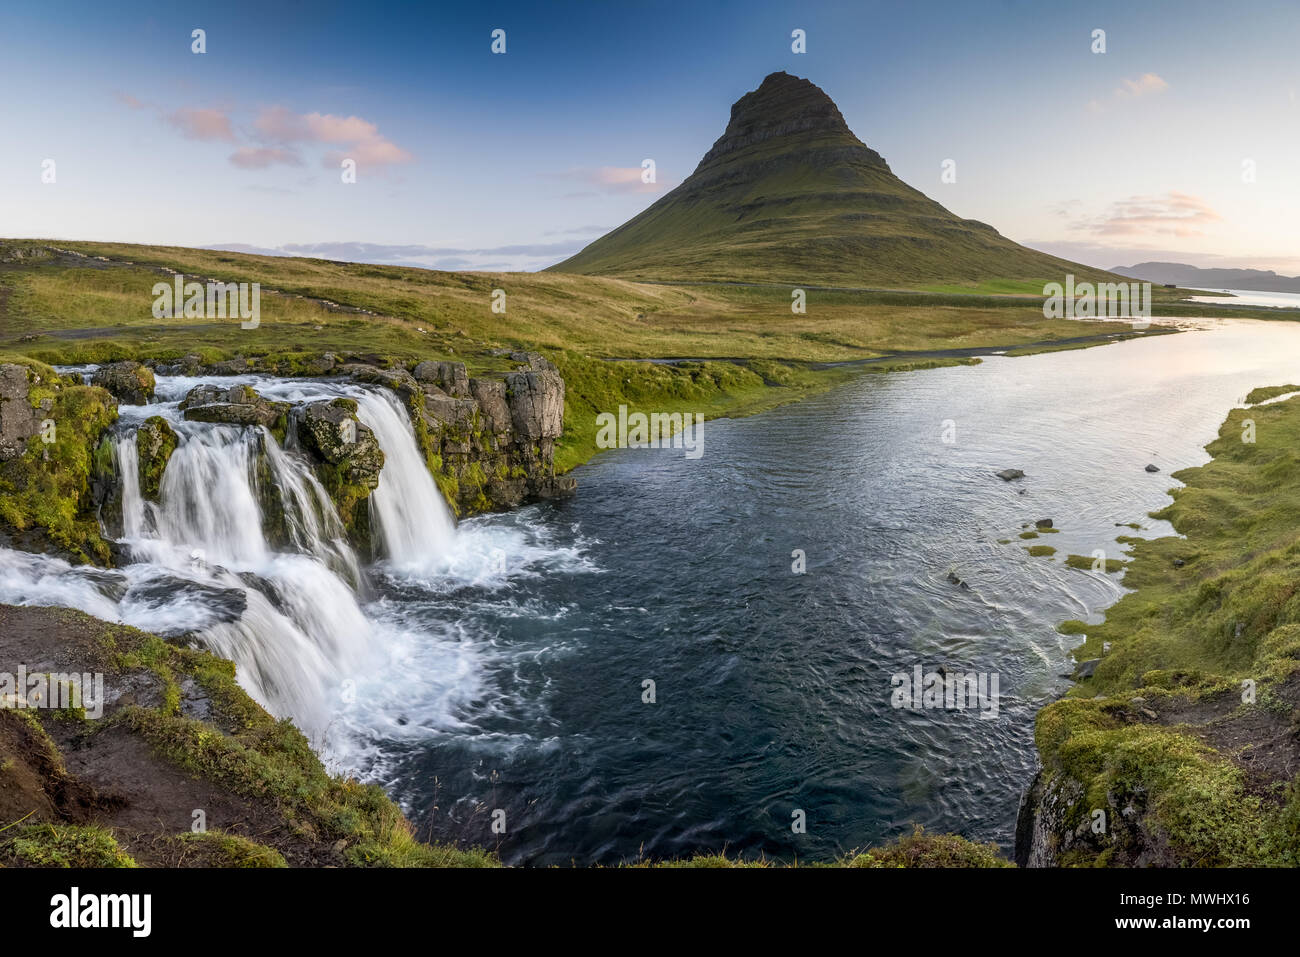 Kirkjufell and Kirkjufellsfoss near Grundafjördur in Northern Iceland - Stock Image